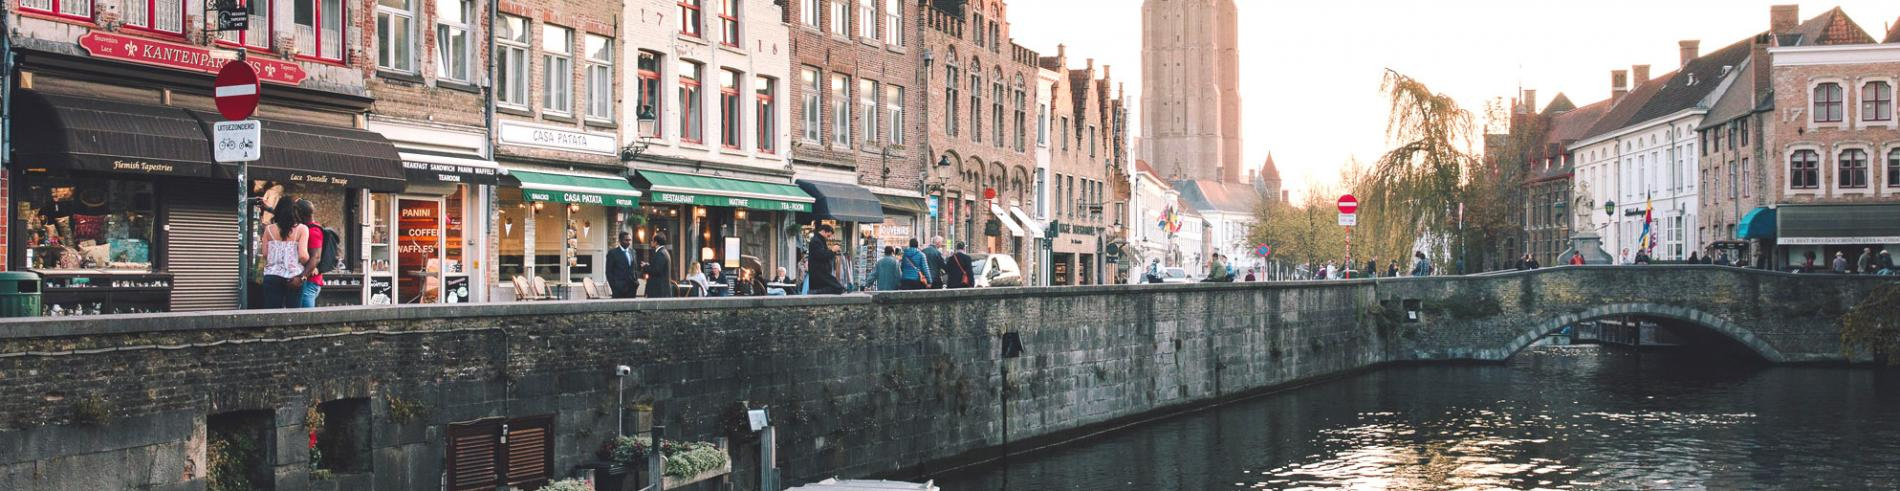 Shops along the side of a canal in Bruges